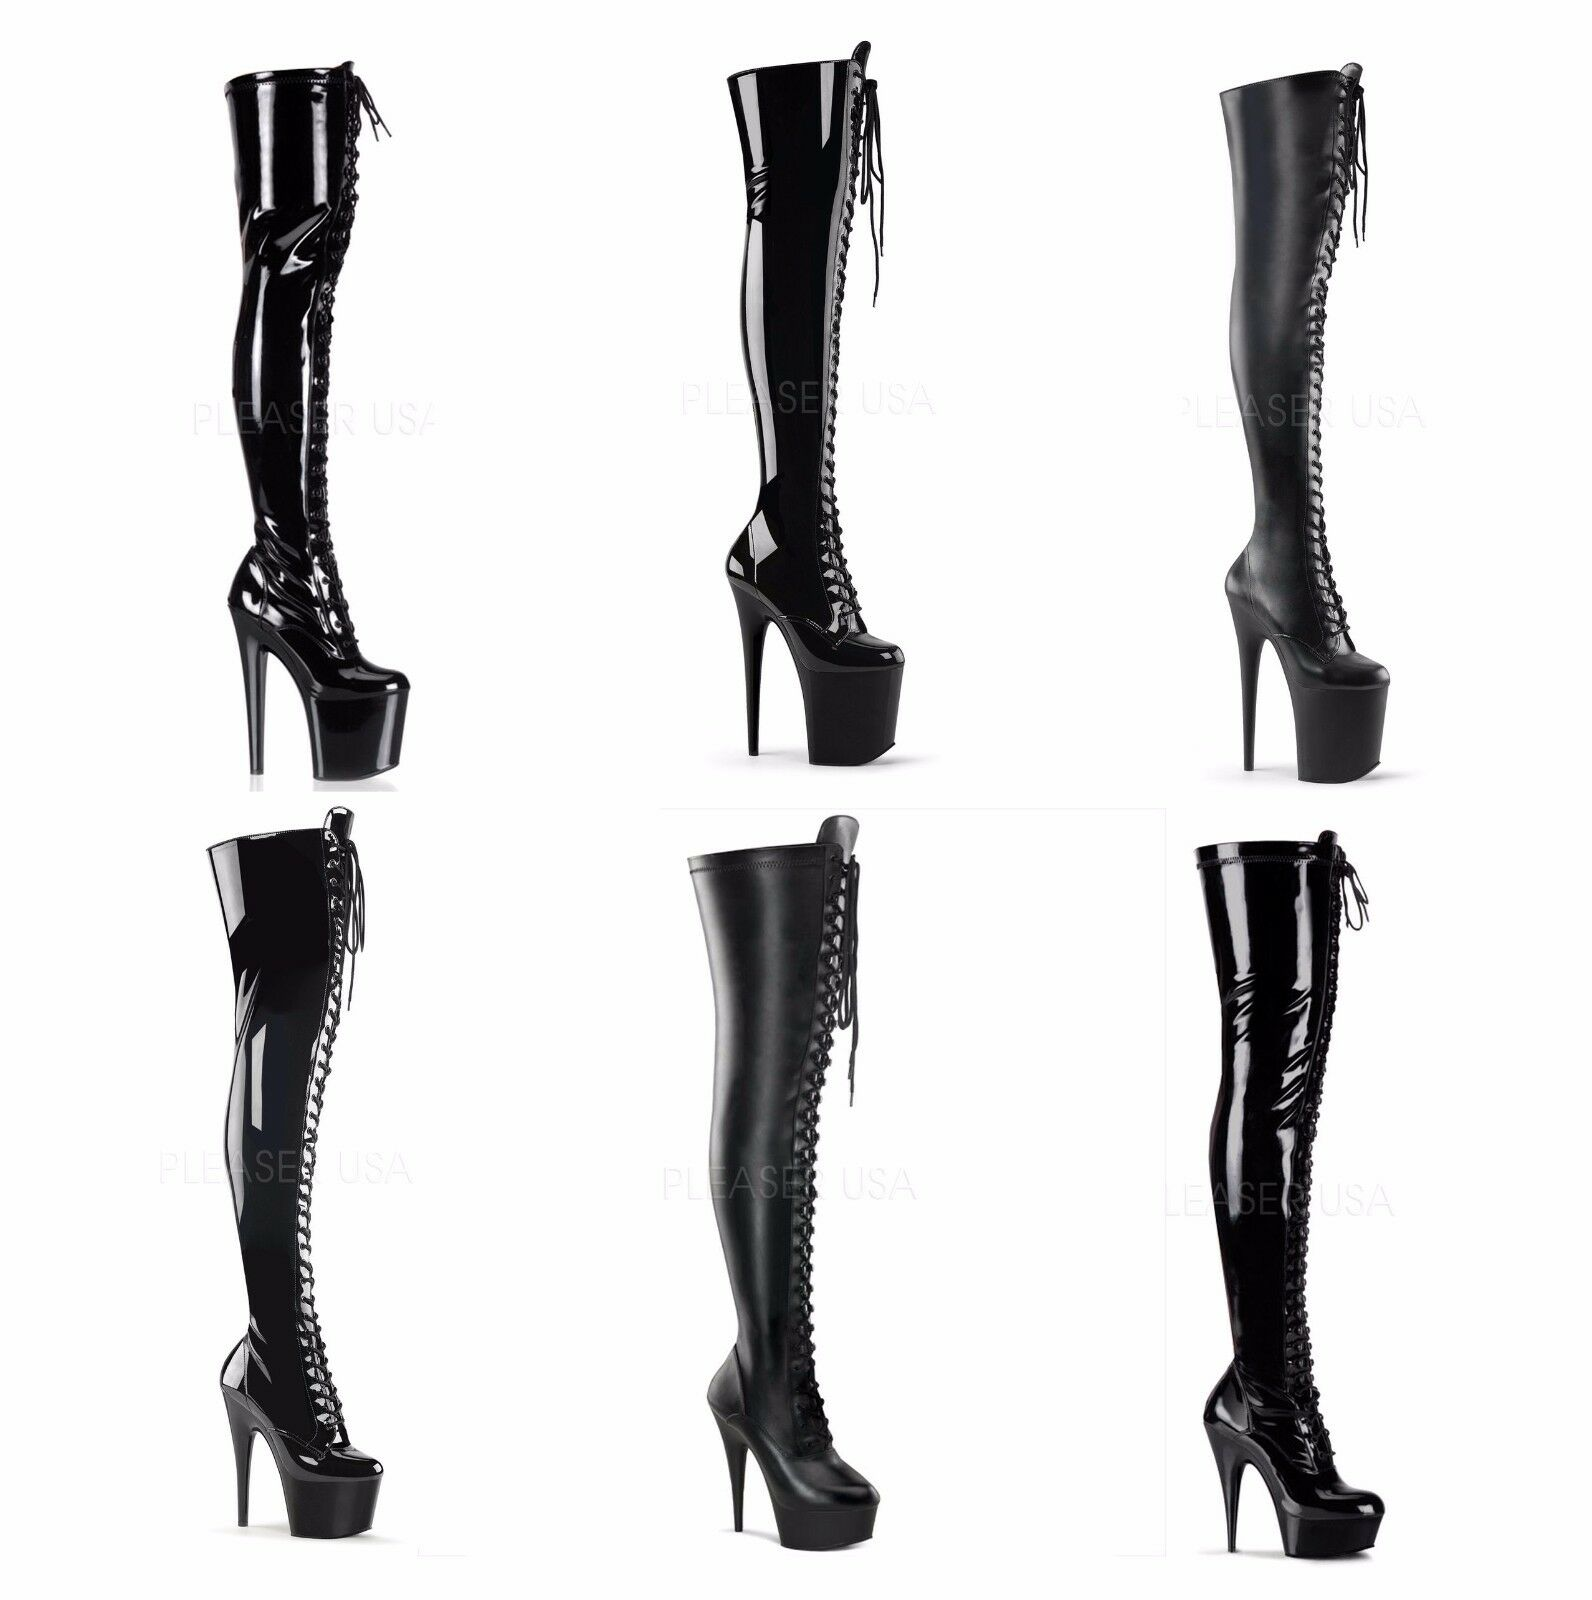 Pleaser ADORE DELIGHT 3023 sexy Platform Thigh High Boots